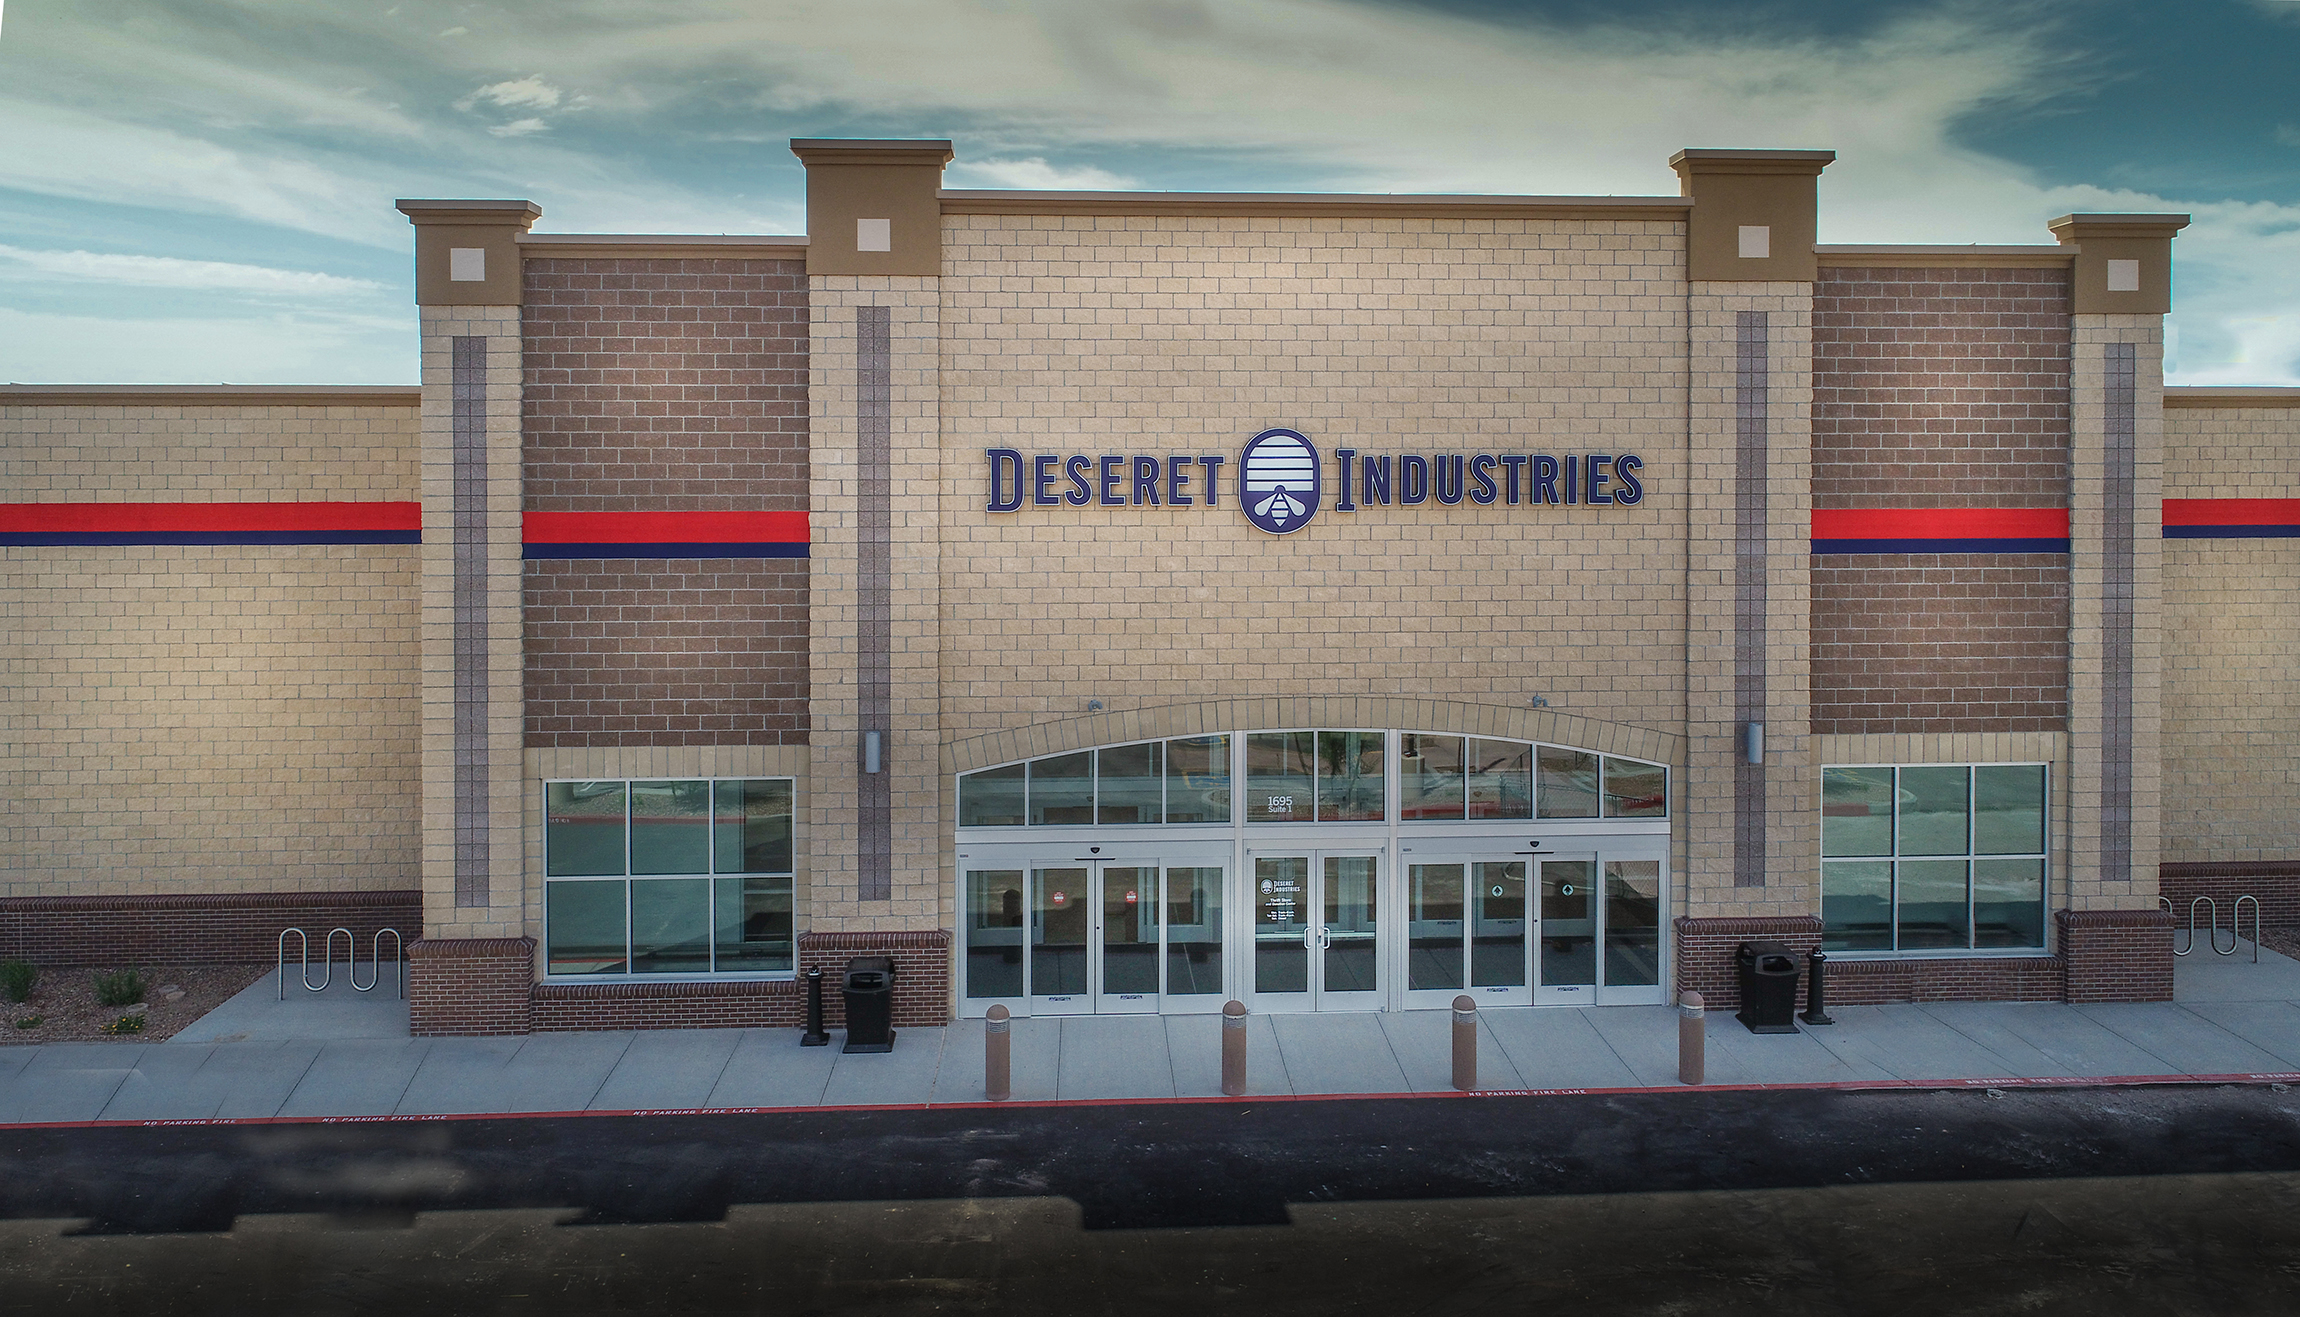 The exterior of the new Deseret Industries in Gilbert, Arizona, which was dedicated by Bishop Dean M. Davies of the Presiding Bishopric on Oct. 20, 2018.